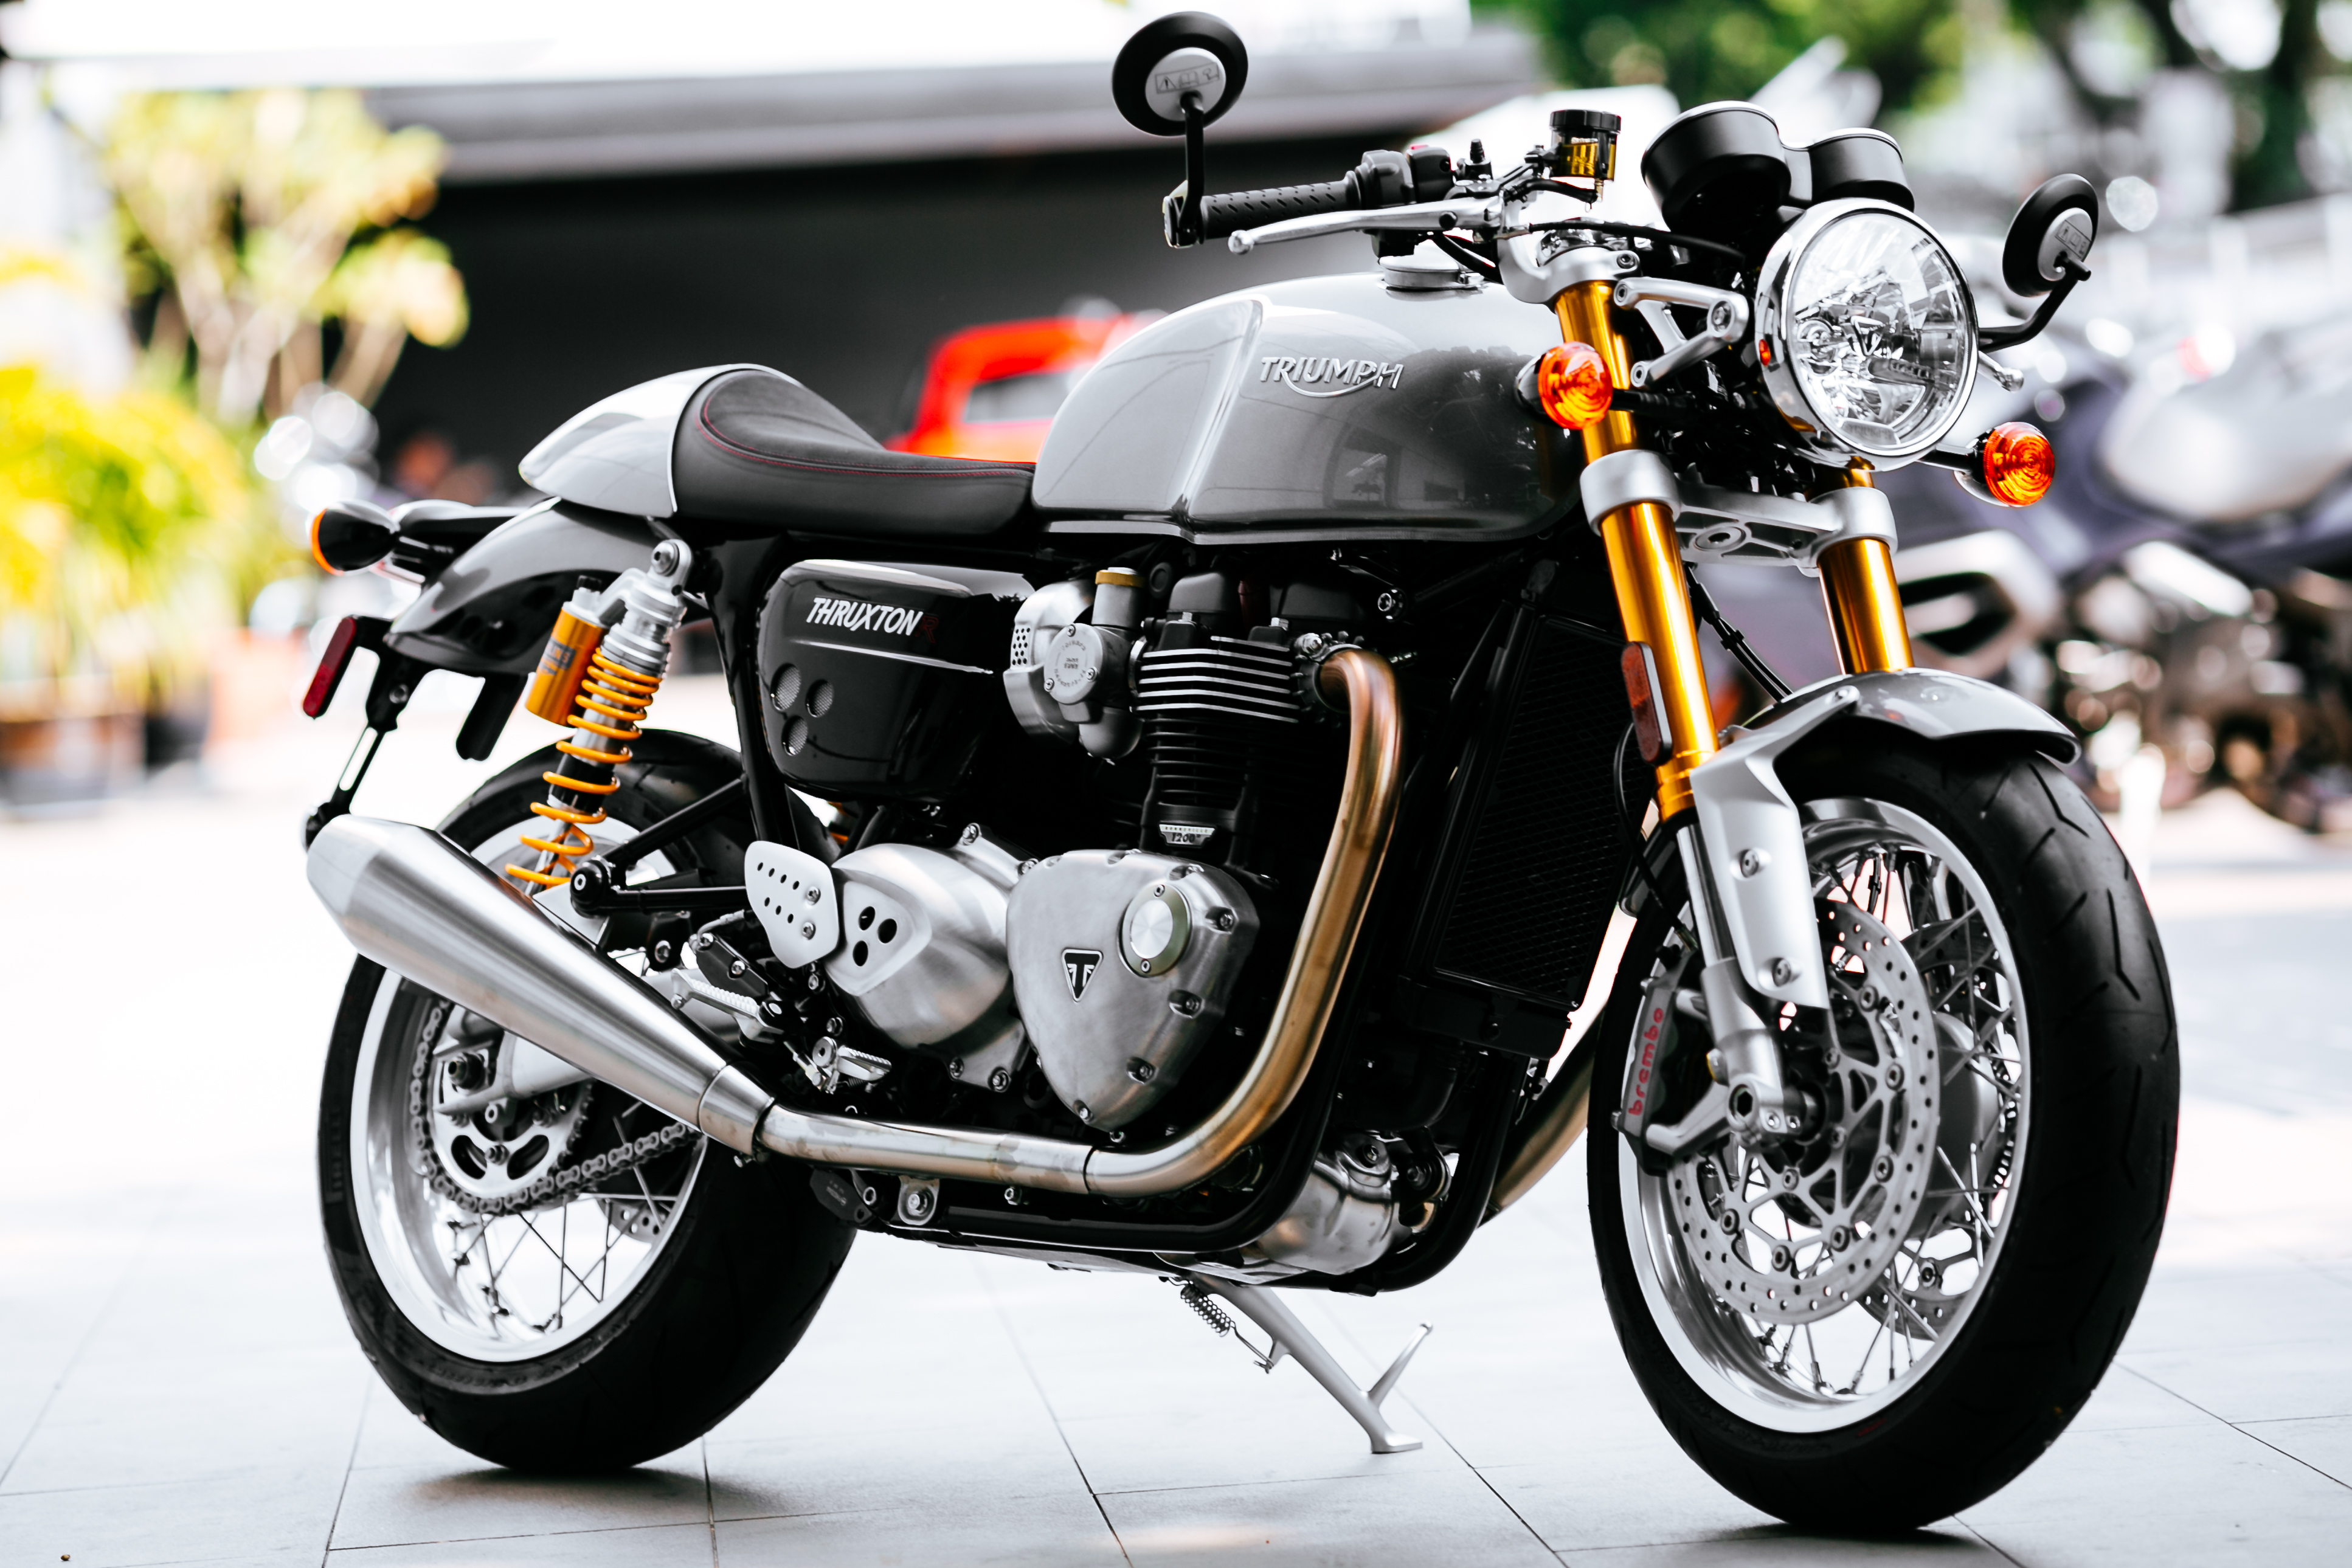 The Thruxton R Features Classic Cafe Racer Design A Big Powerful Engine Brilliant Brakes And Ohlins Showa Suspension